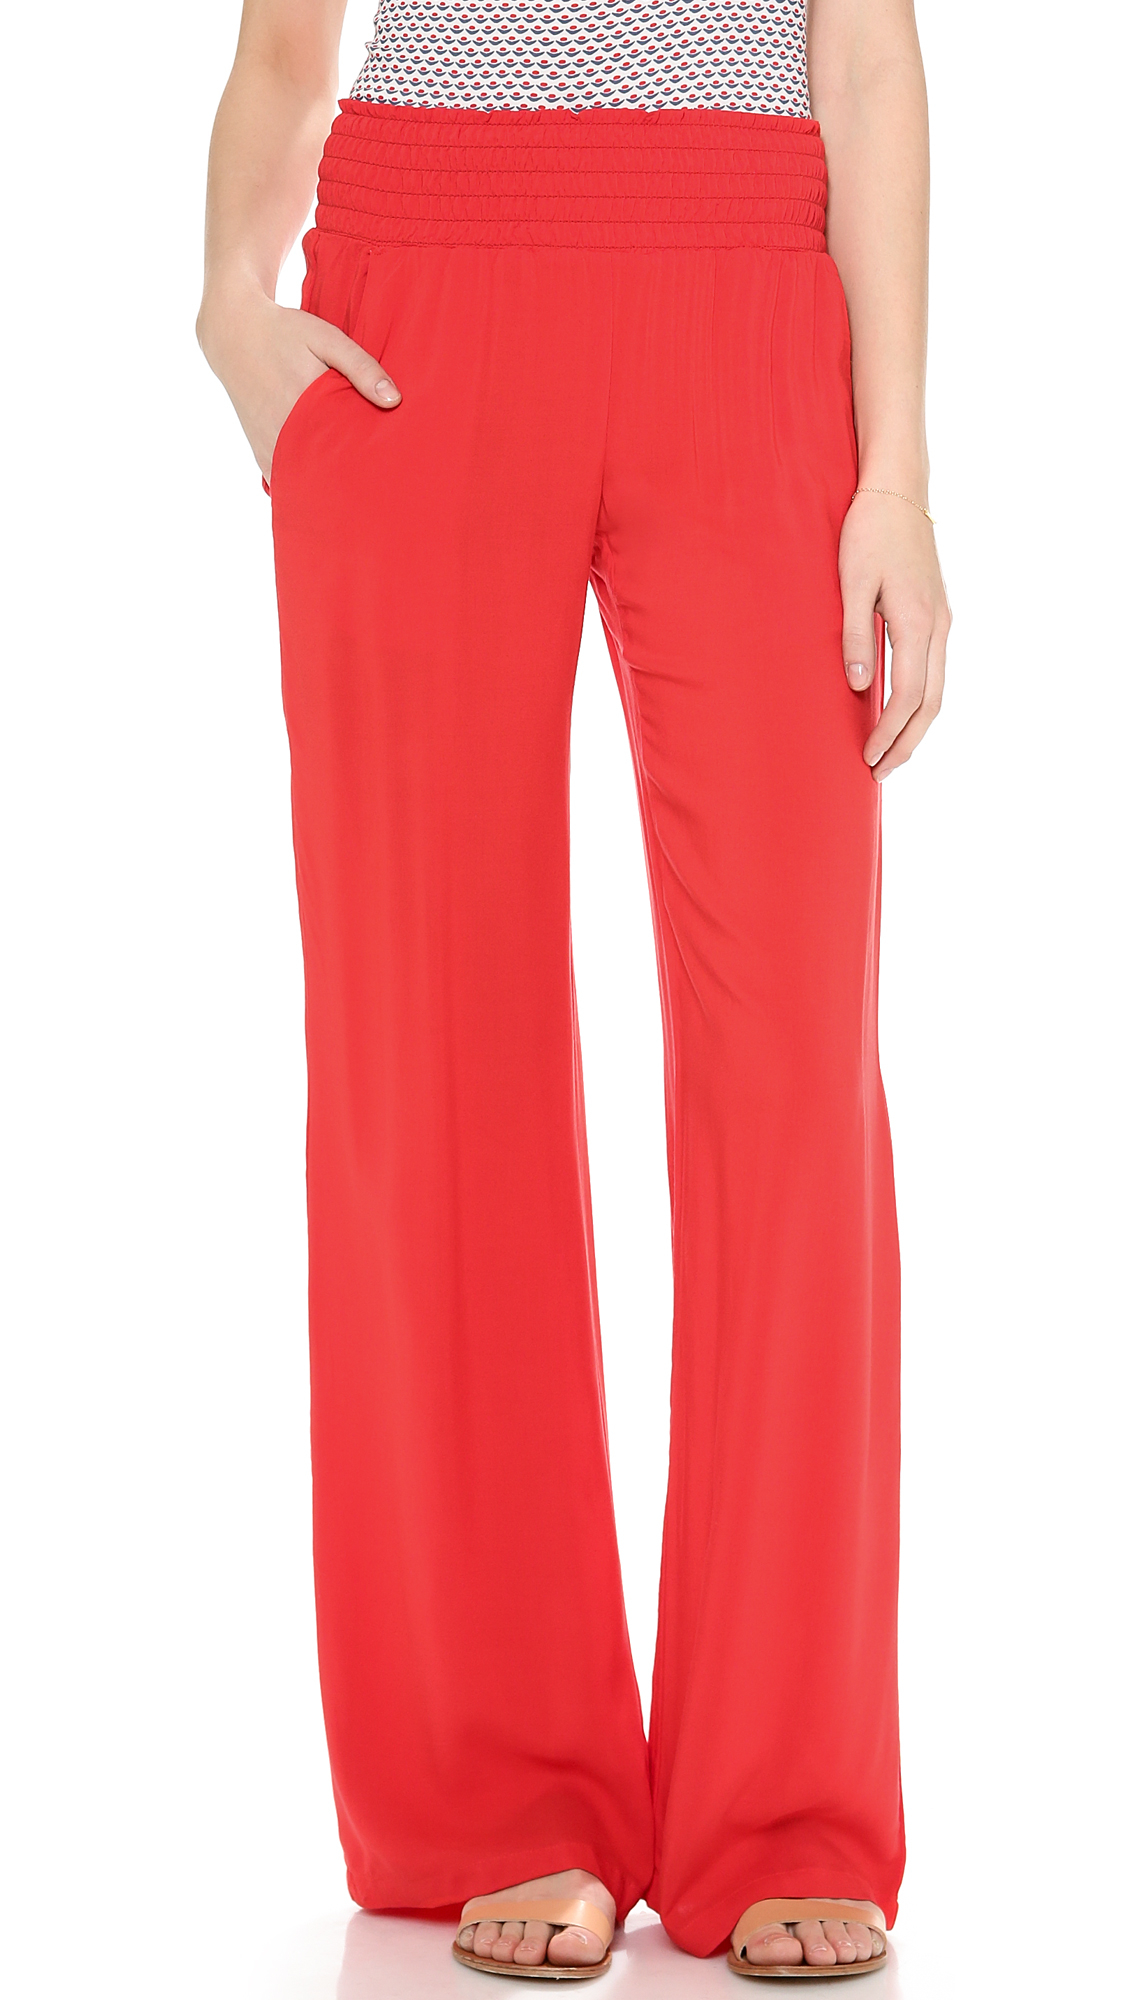 Splendid Woven Wide Leg Pants - Fiesta in Red | Lyst